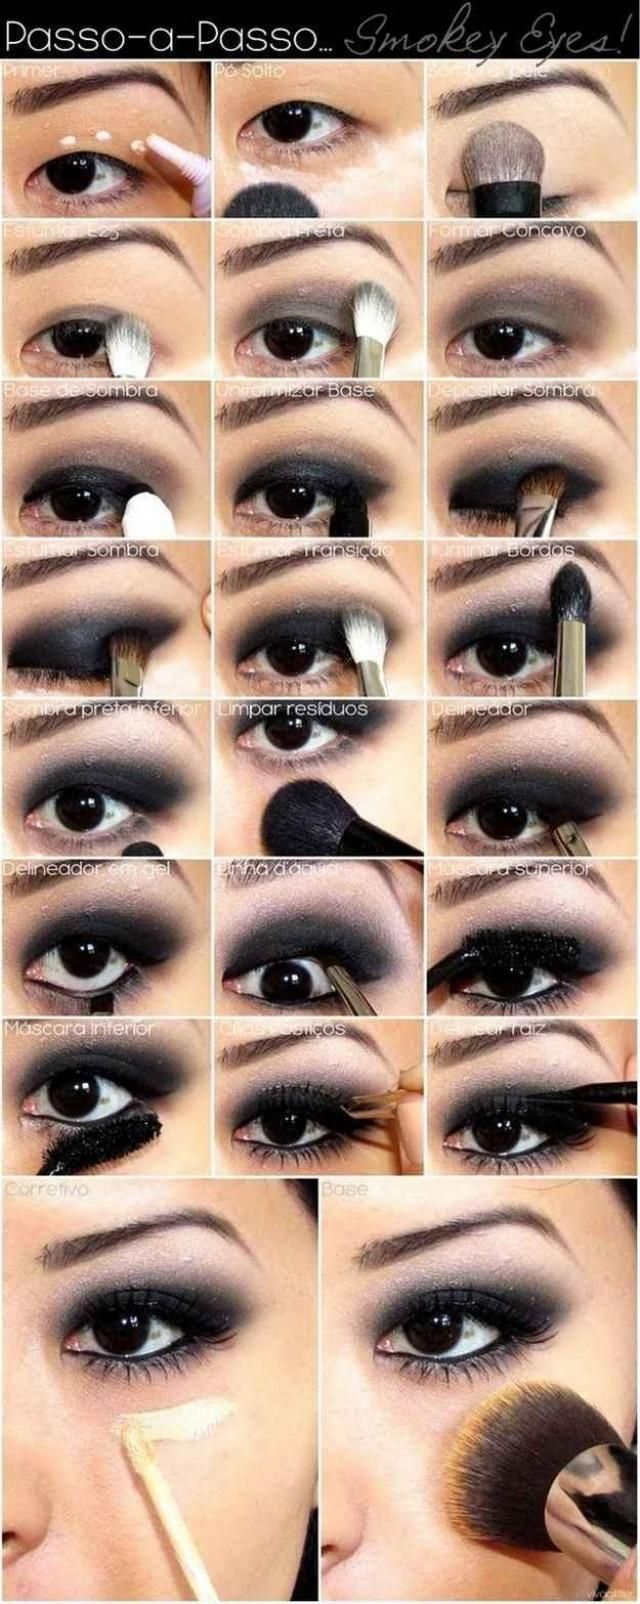 Weddbook is a content discovery engine mostly specialized on wedding concept. You can collect images, videos or articles you discovered organize them, add your own ideas to your collections and share with other people | Go full-on smokey eye.